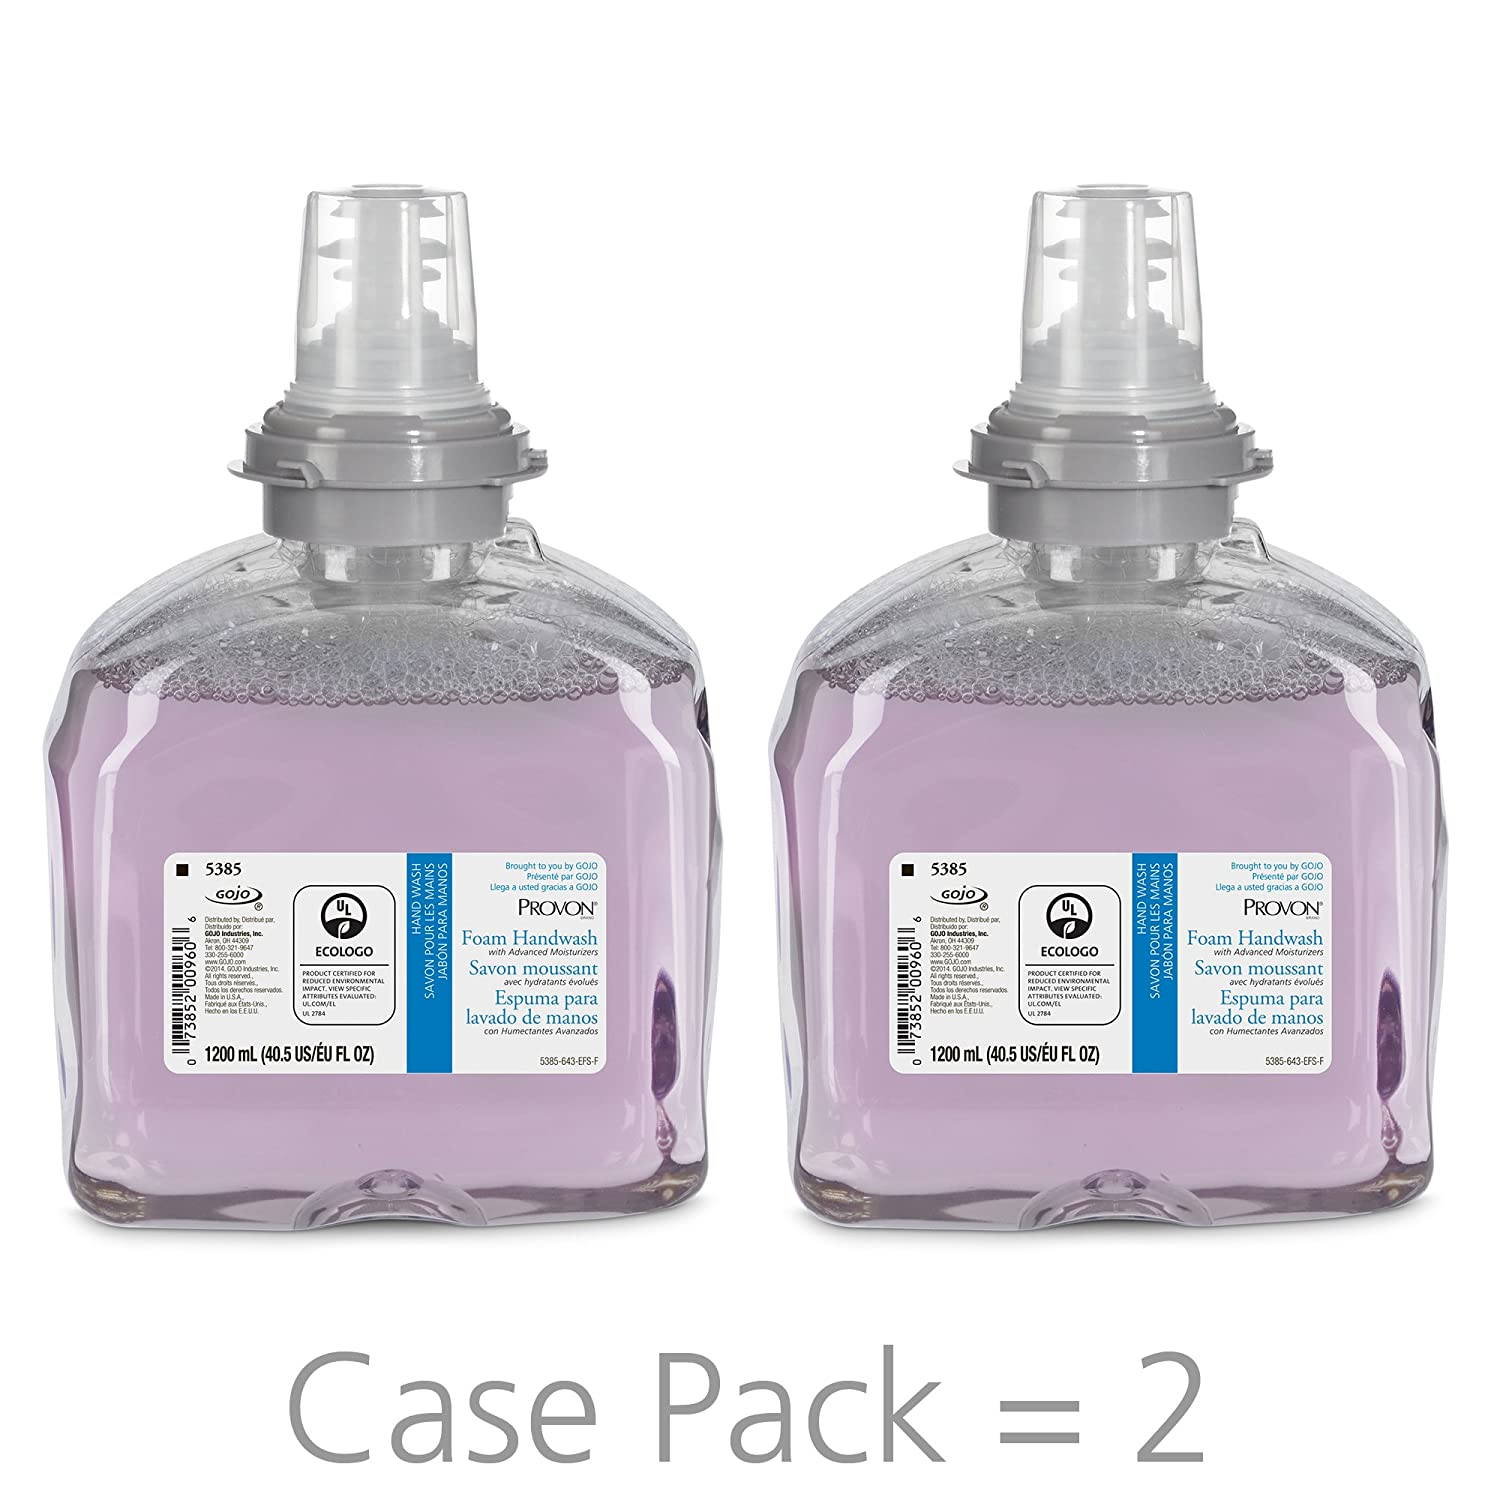 PROVON Foaming Handwash with Advanced Moisturizers, Cranberry Fragrance, 1200 mL Foam Hand Soap Refill for PROVON TFX Touch-Free Dispenser (Pack of 2) - 5385-02